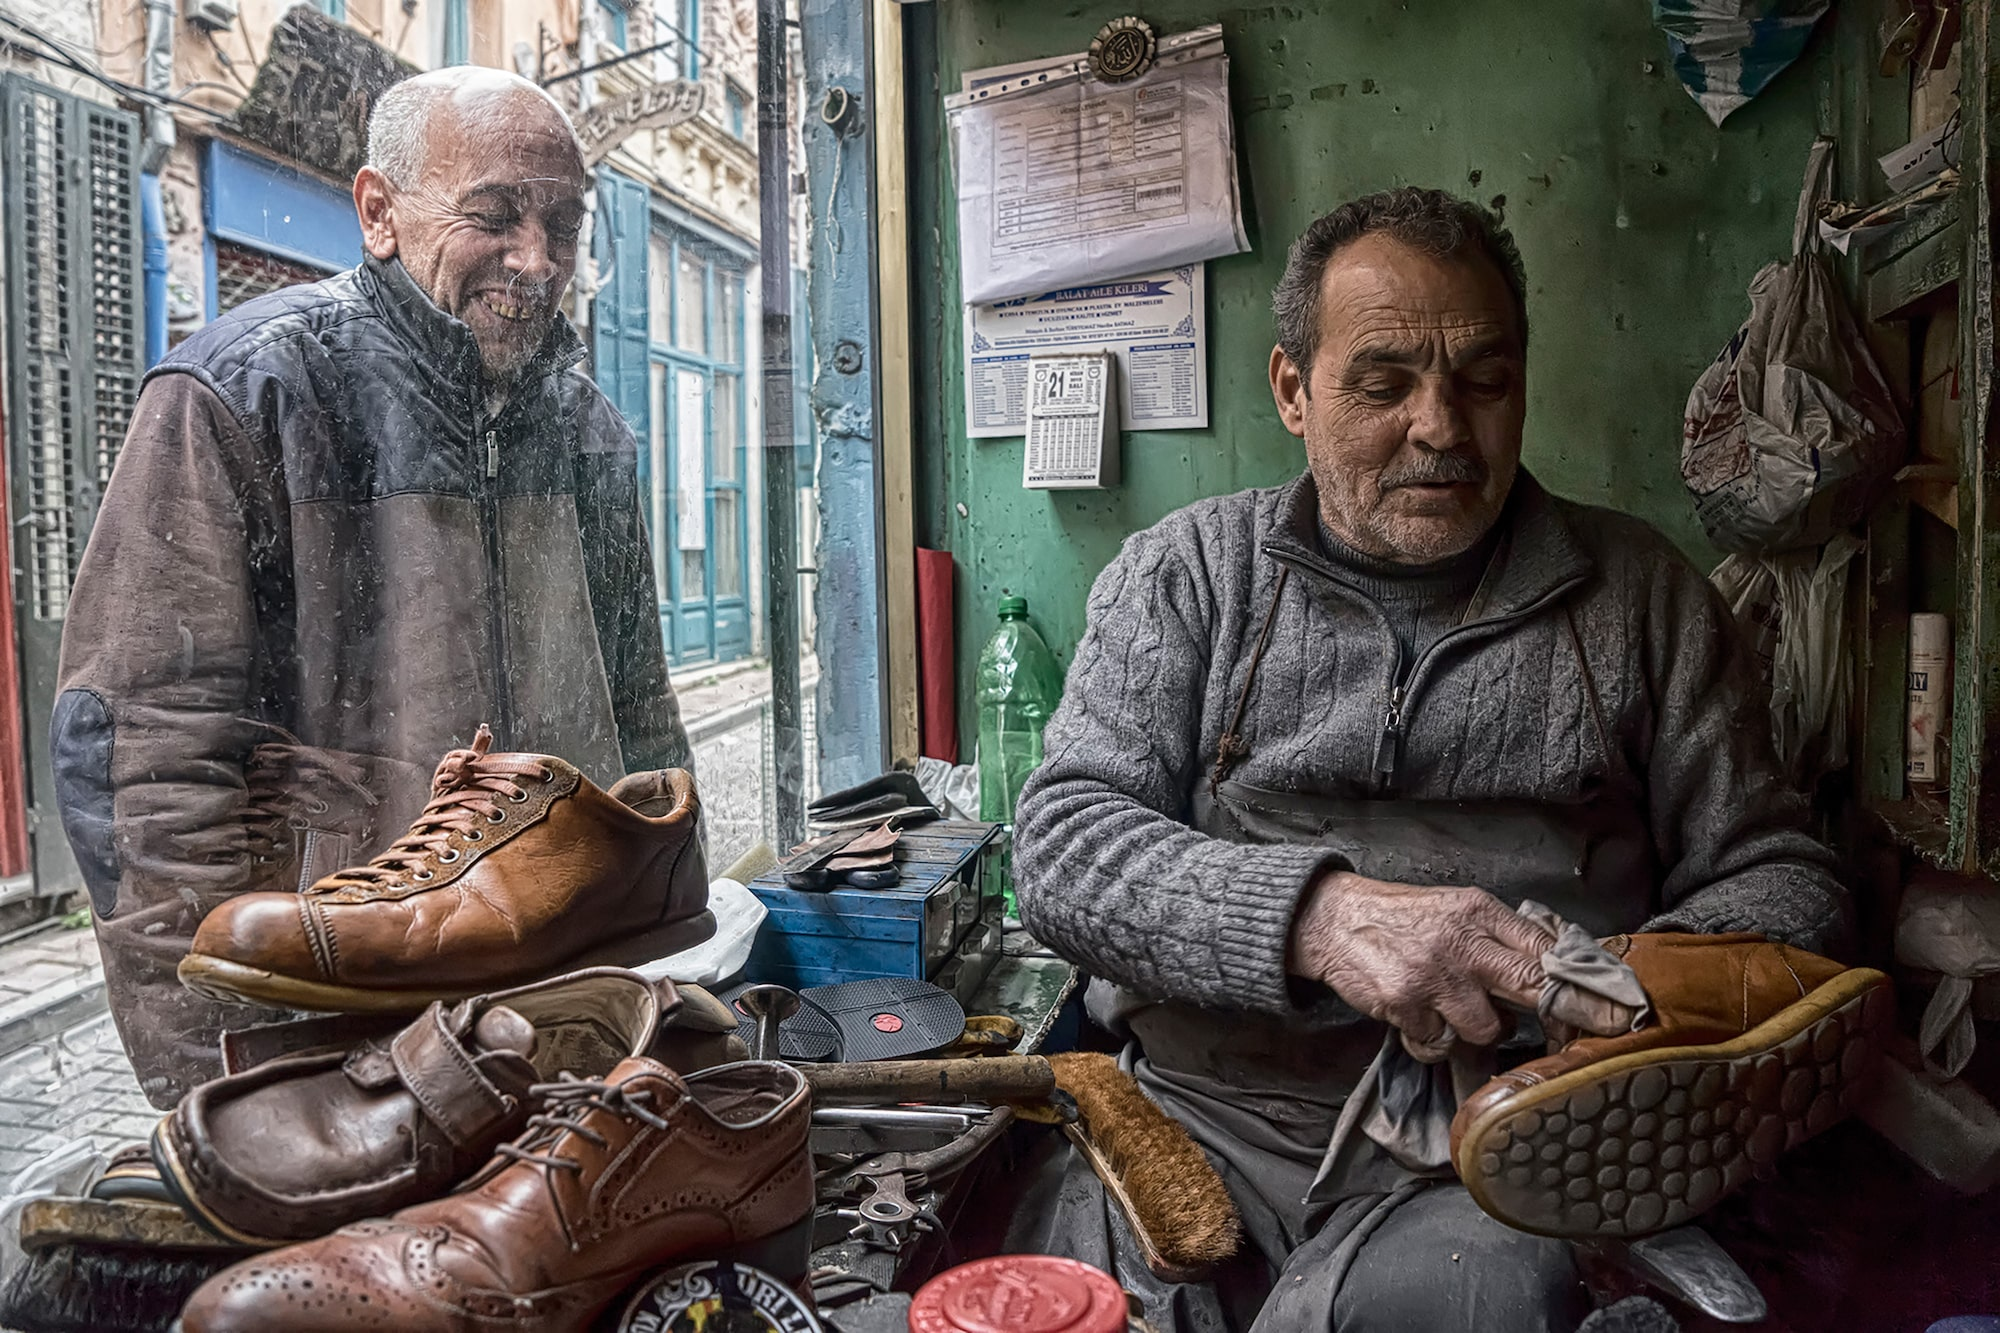 murat pulat sony alpha 7II a cobbler sits and rubs polish into a show while an old man looks through the window